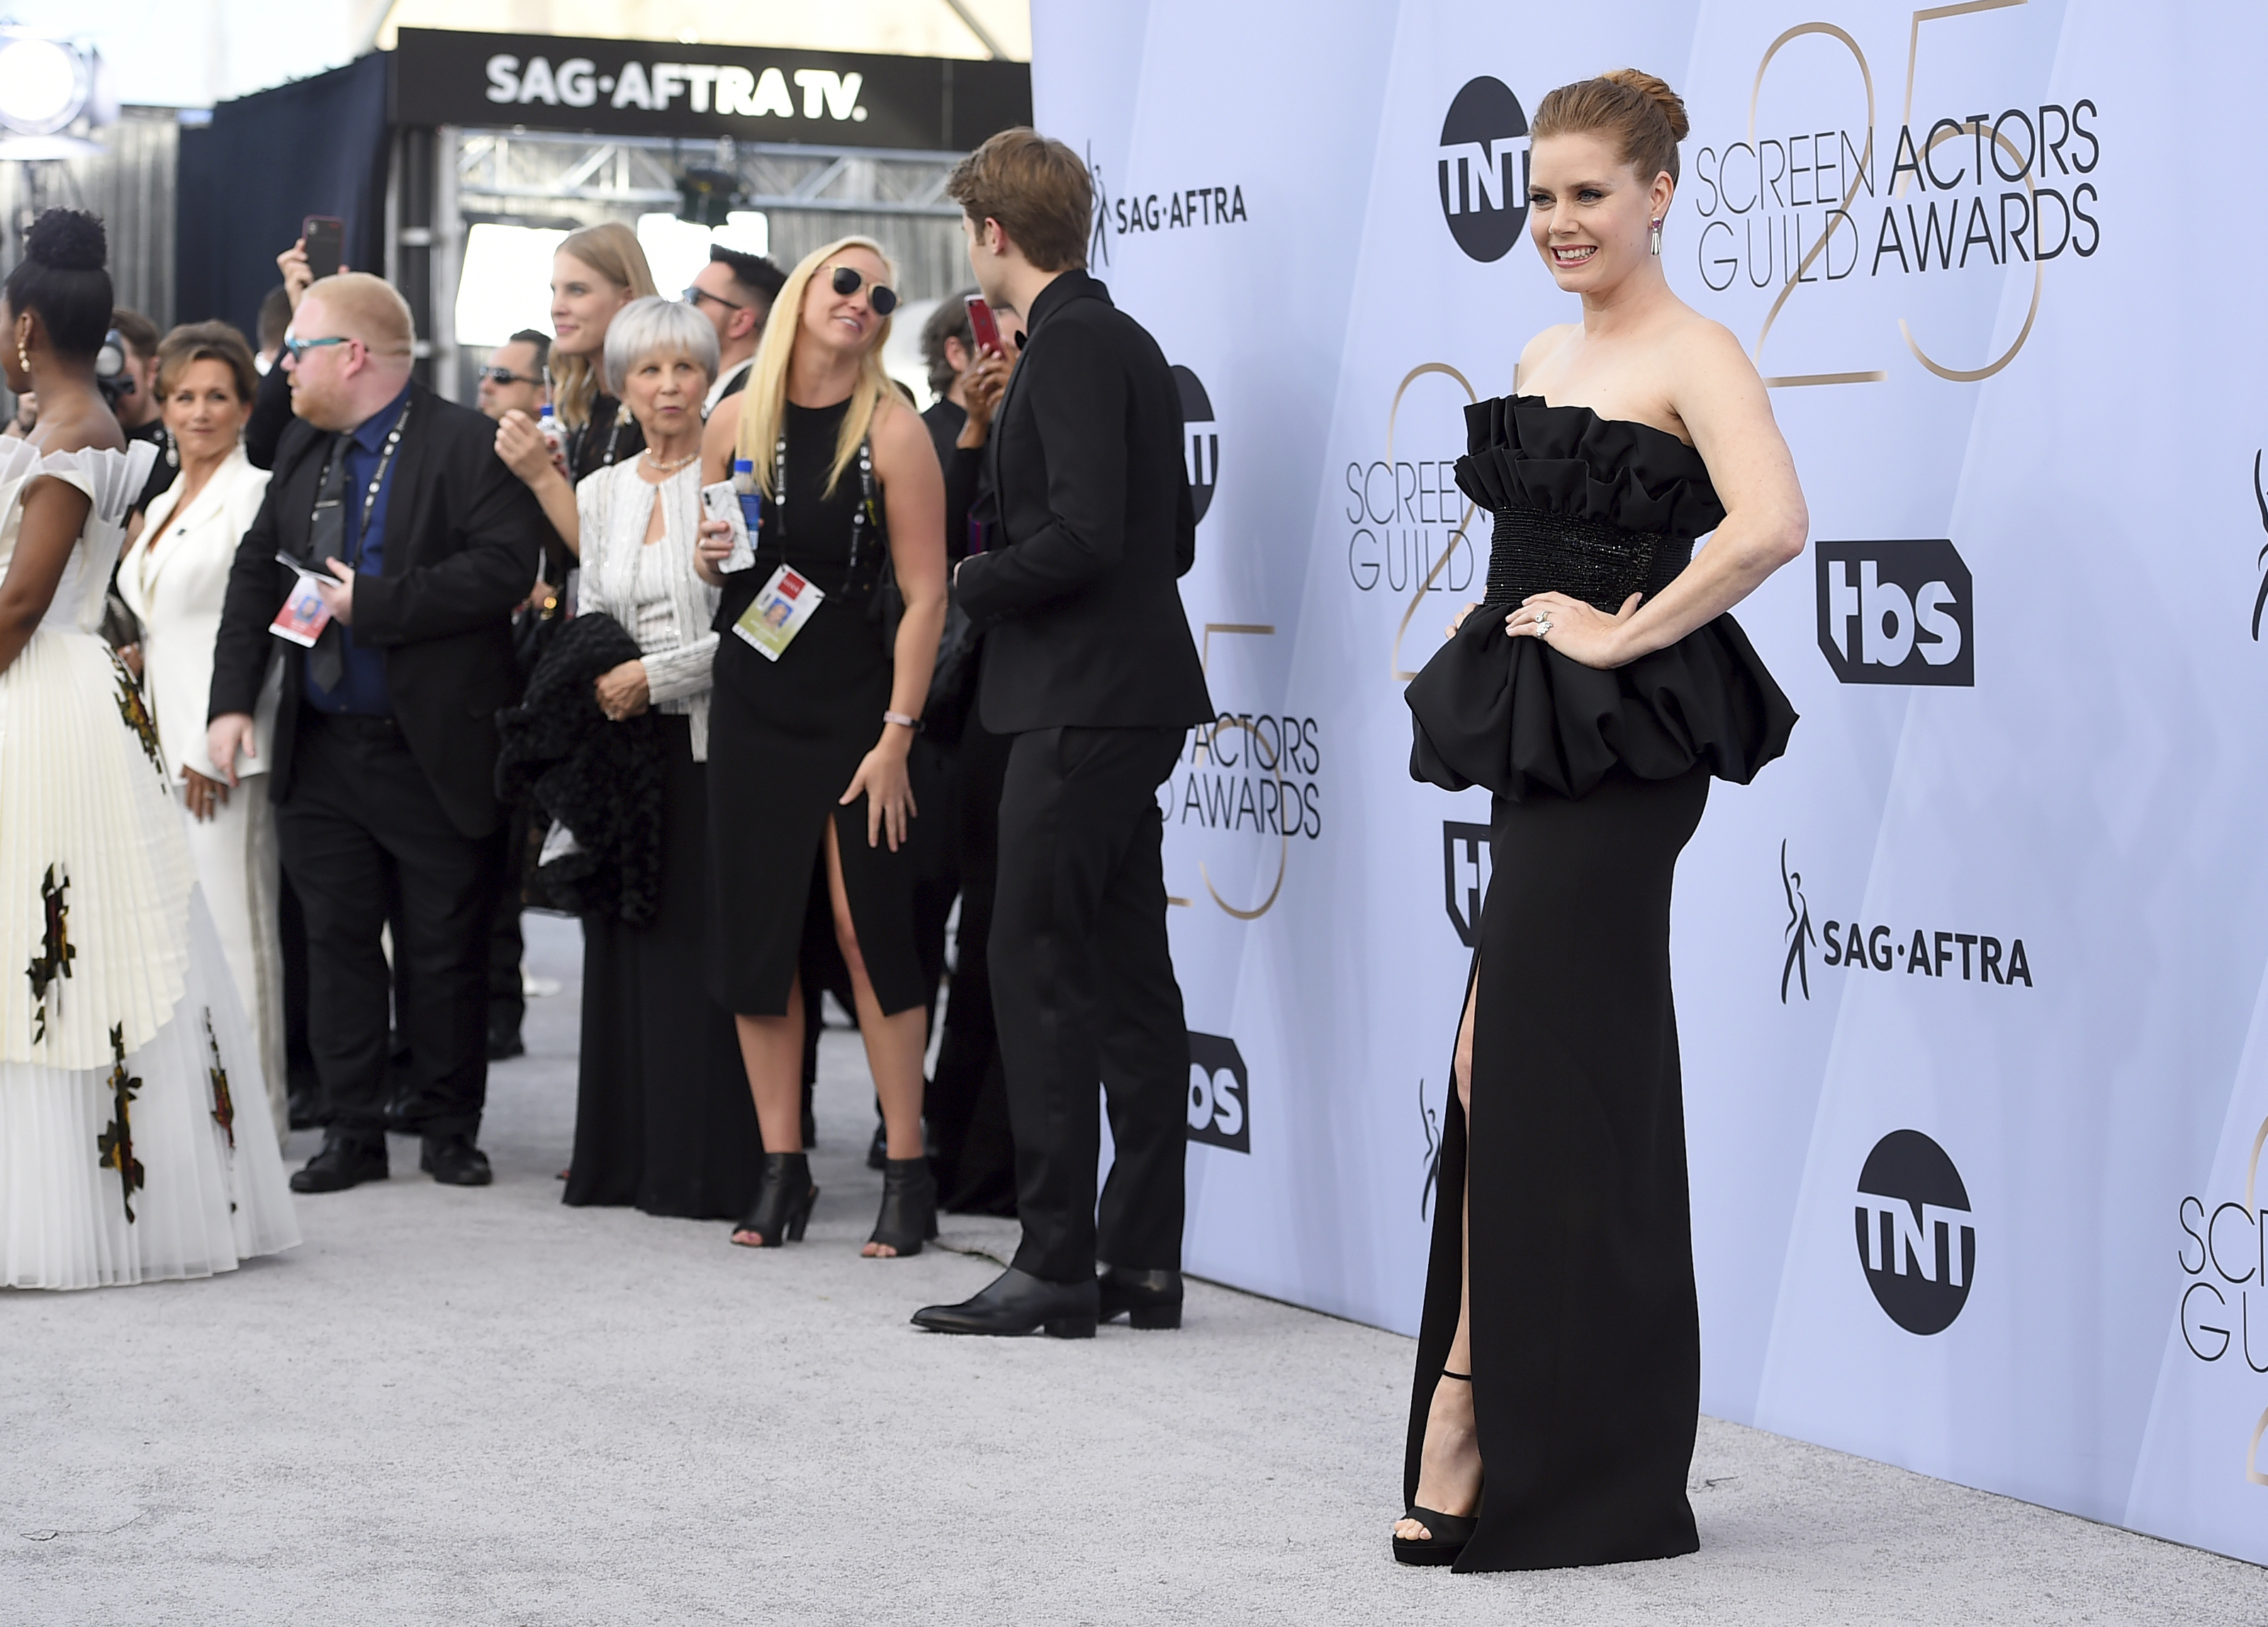 Amy Adams arrives at the 25th annual Screen Actors Guild Awards at the Shrine Auditorium & Expo Hall on Sunday, Jan. 27, 2019, in Los Angeles. (Photo by Jordan Strauss/Invision/AP)